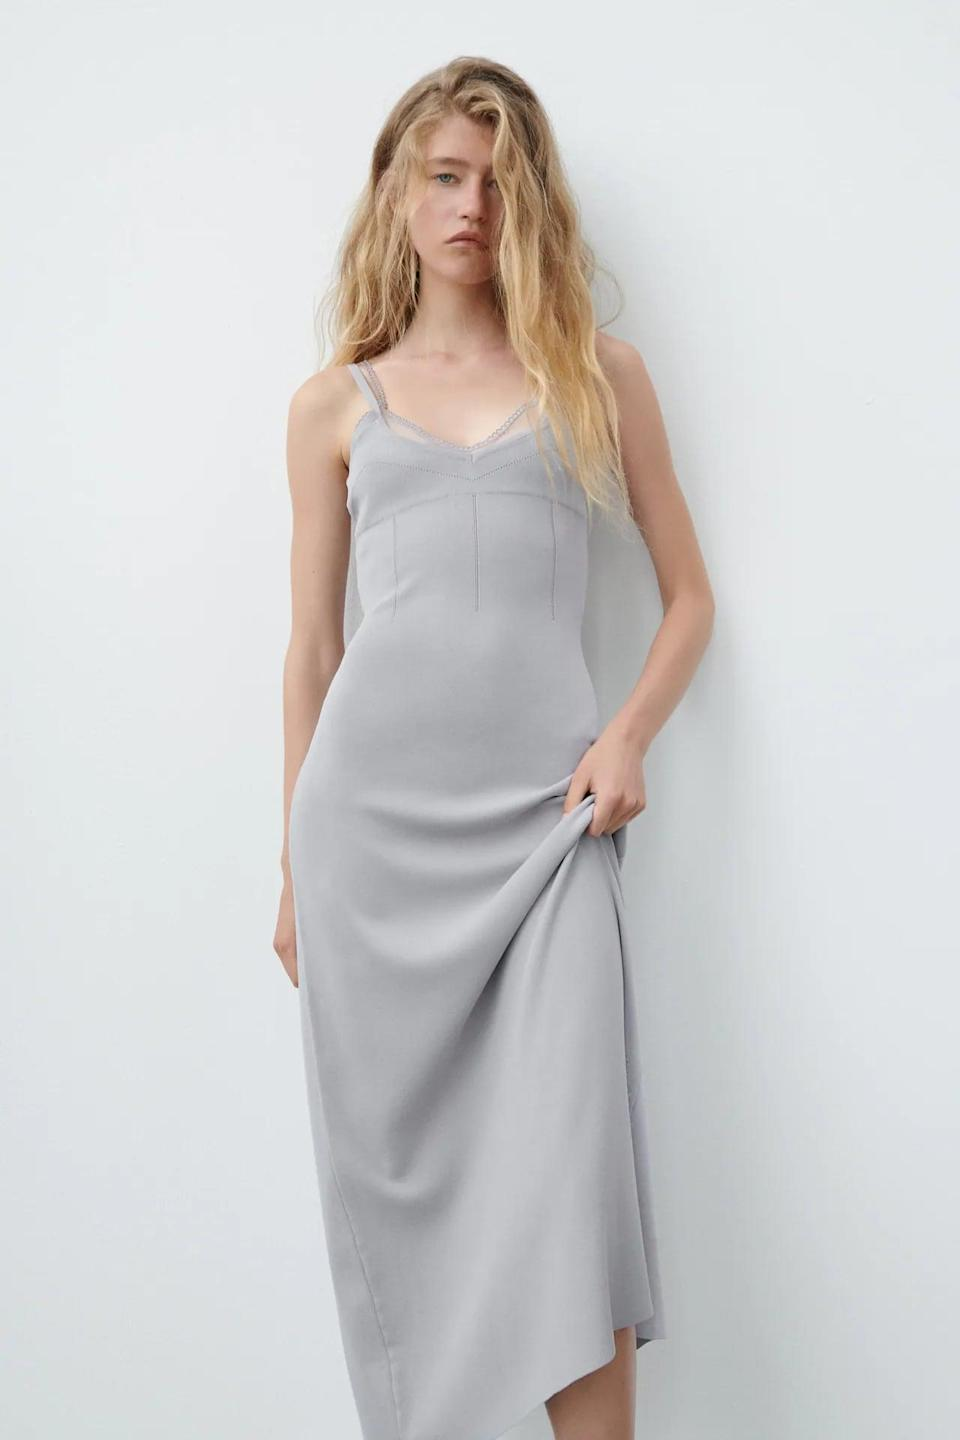 <p>The simplicity of this <span>Combination Knit Dress</span> ($70) makes it endlessly wearable. The knit fabric and refined silhouette make for a figure-skimming style.</p>